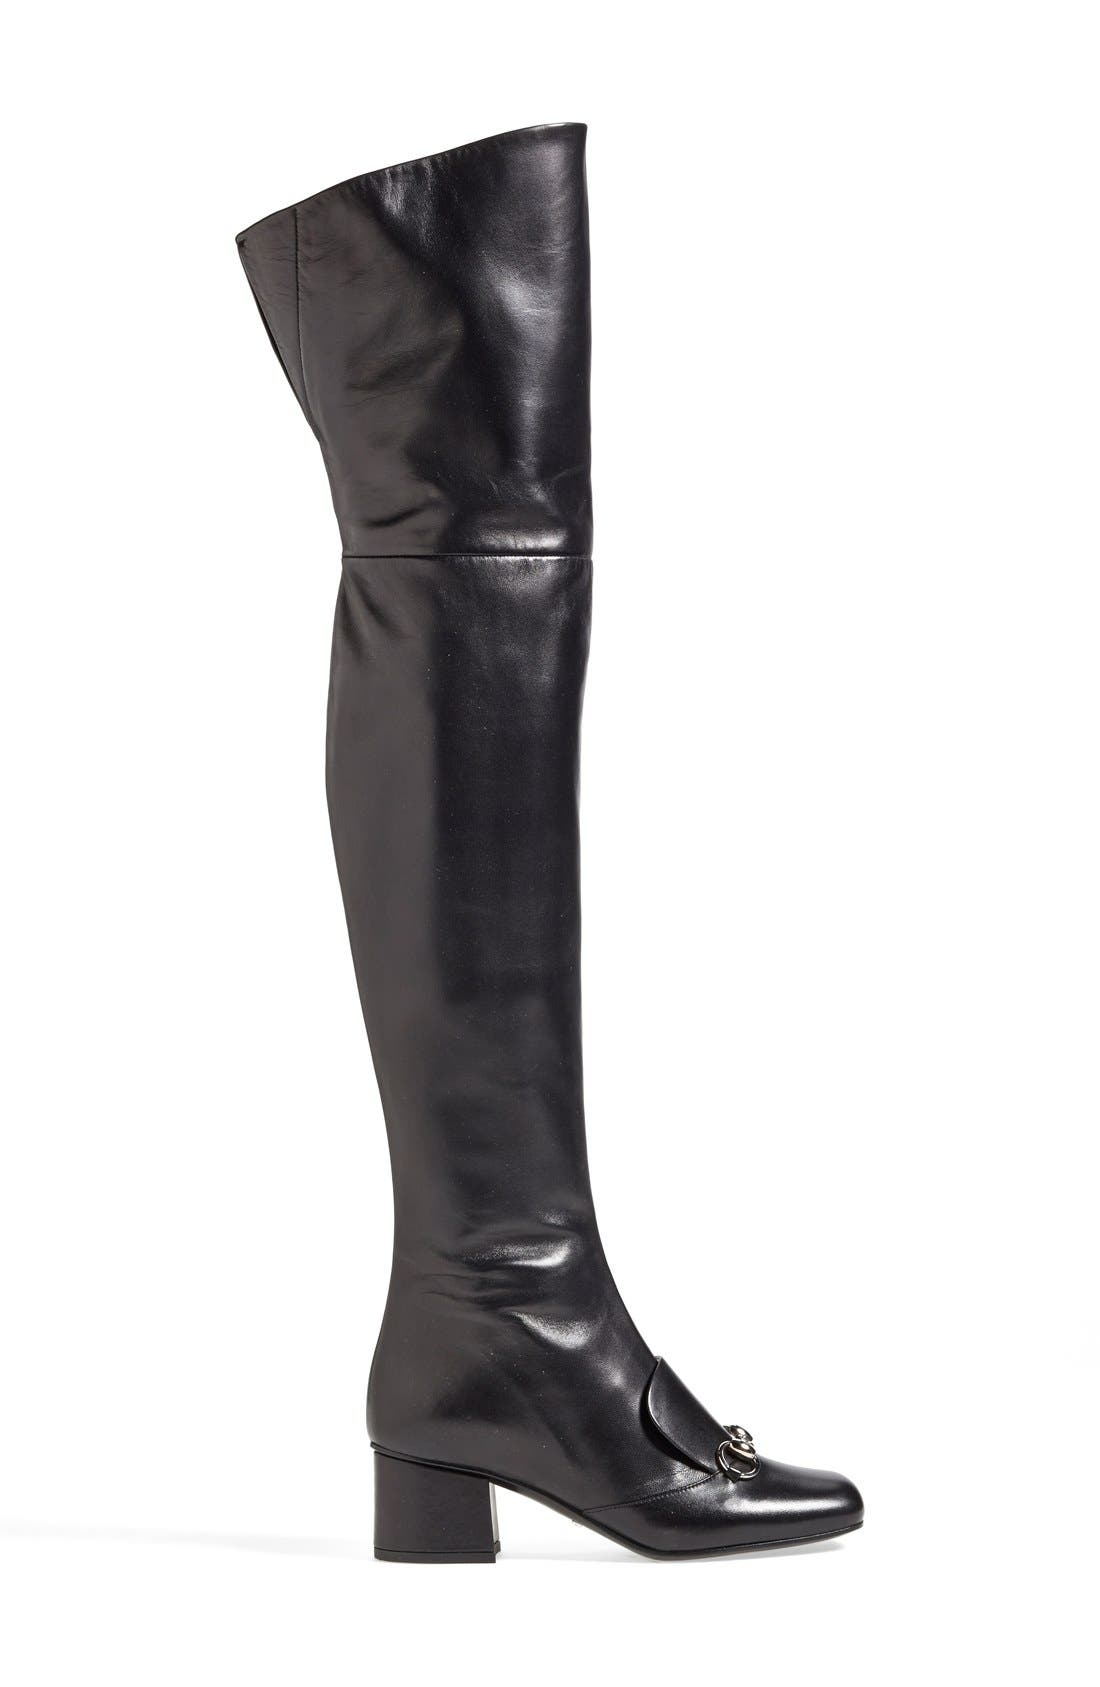 GUCCI,                             'Lillian' Over the Knee Boot,                             Alternate thumbnail 3, color,                             001